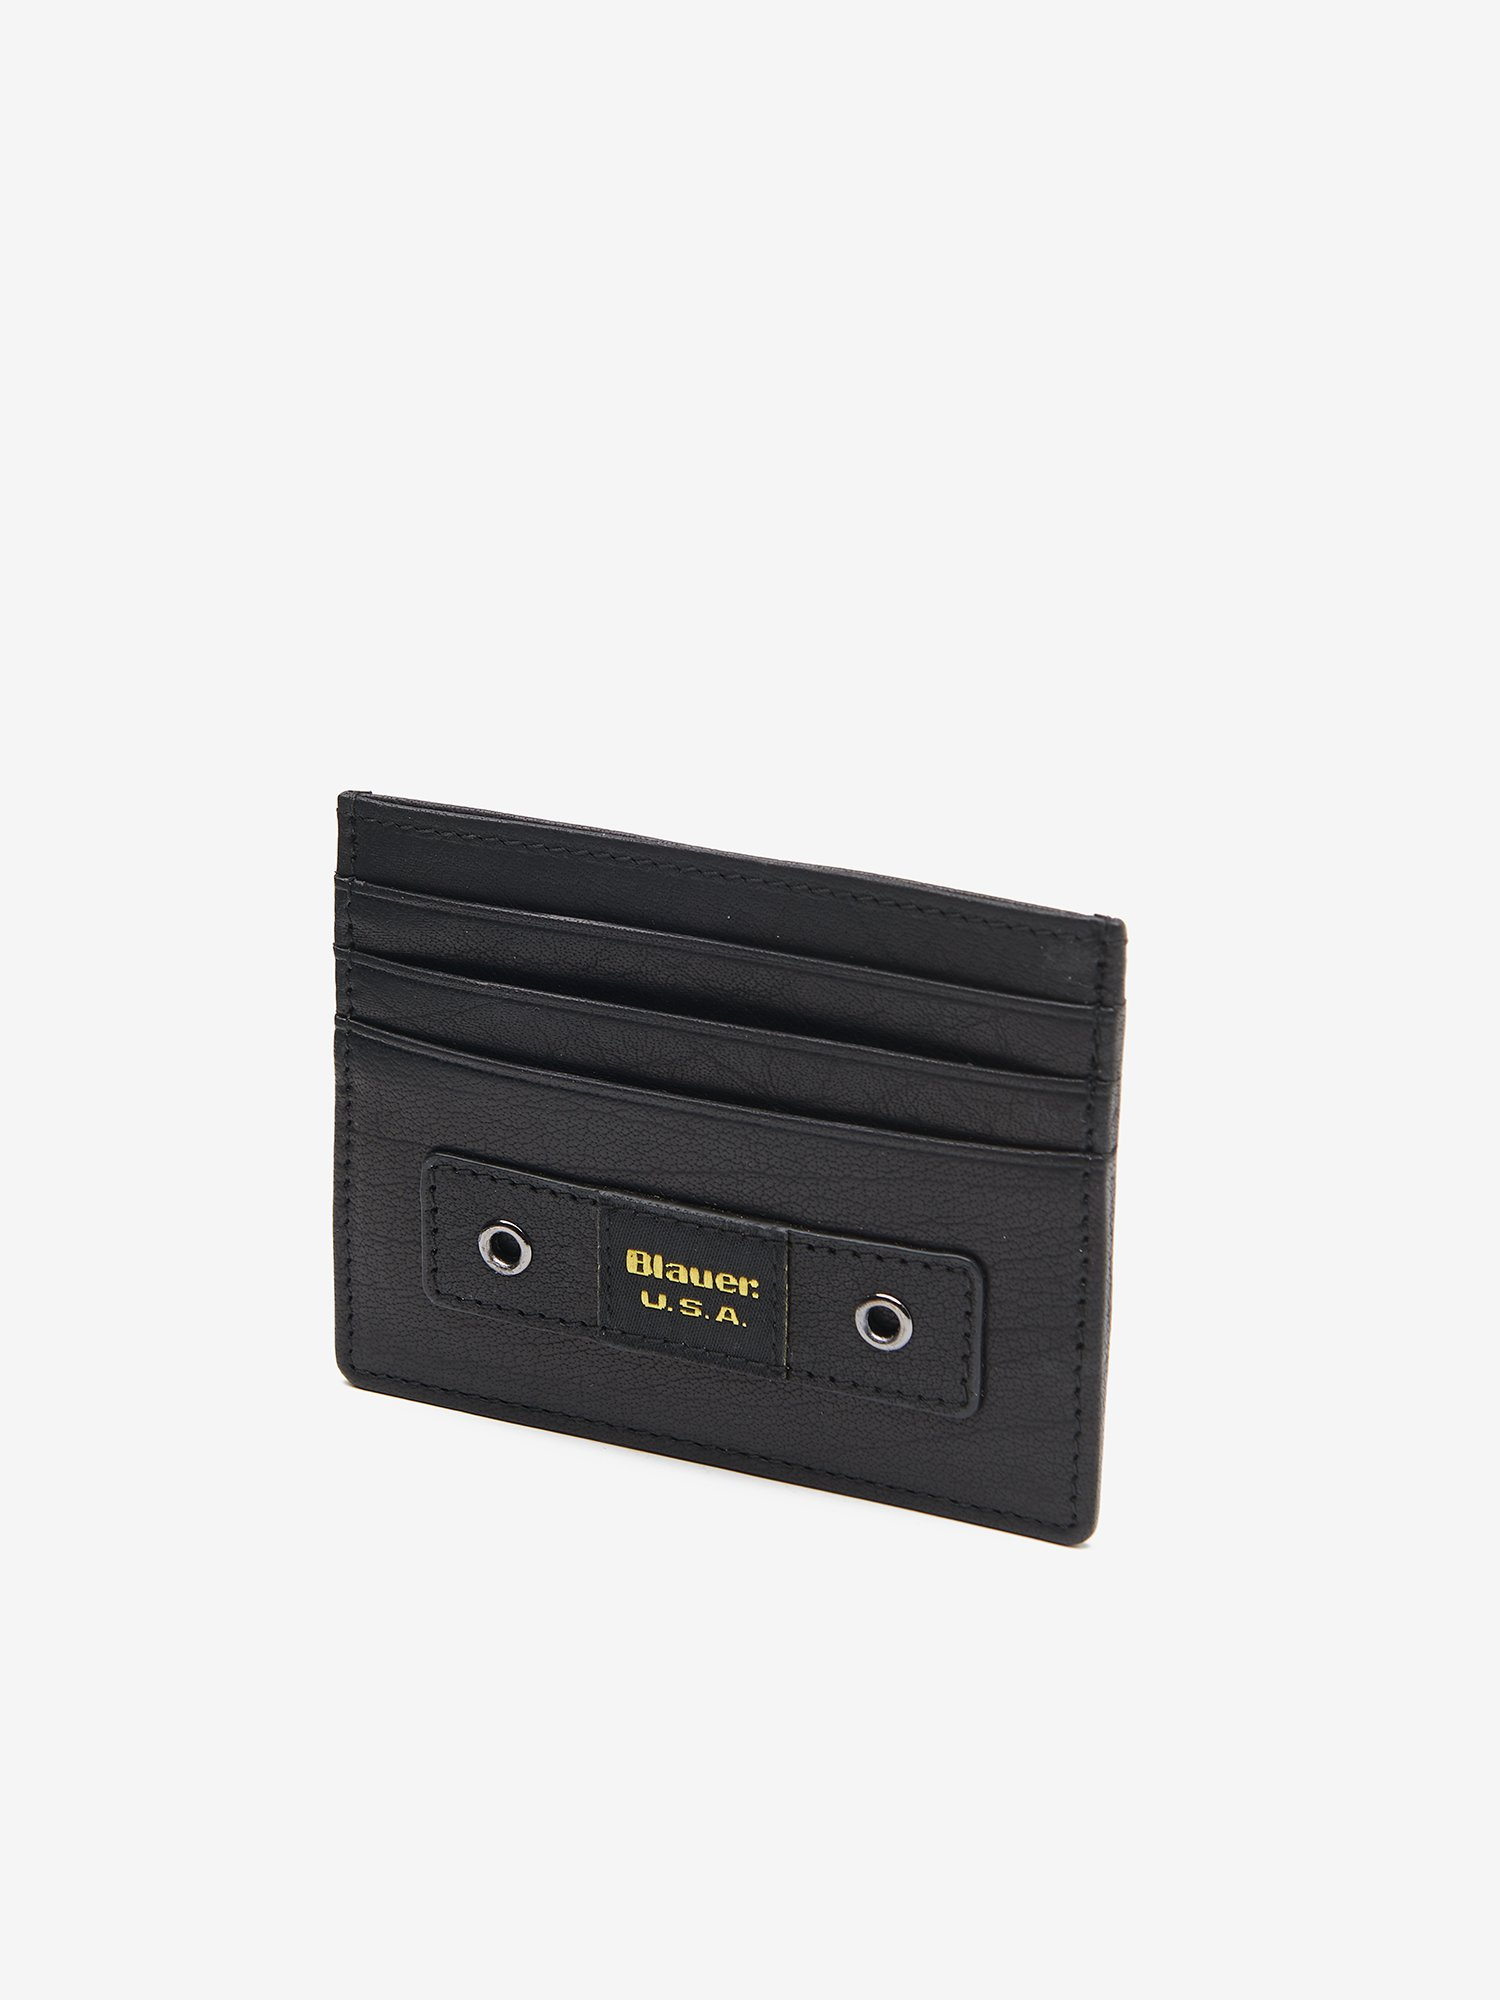 CREDIT CARD HOLDER WITH BLAUER LOOP - Blauer